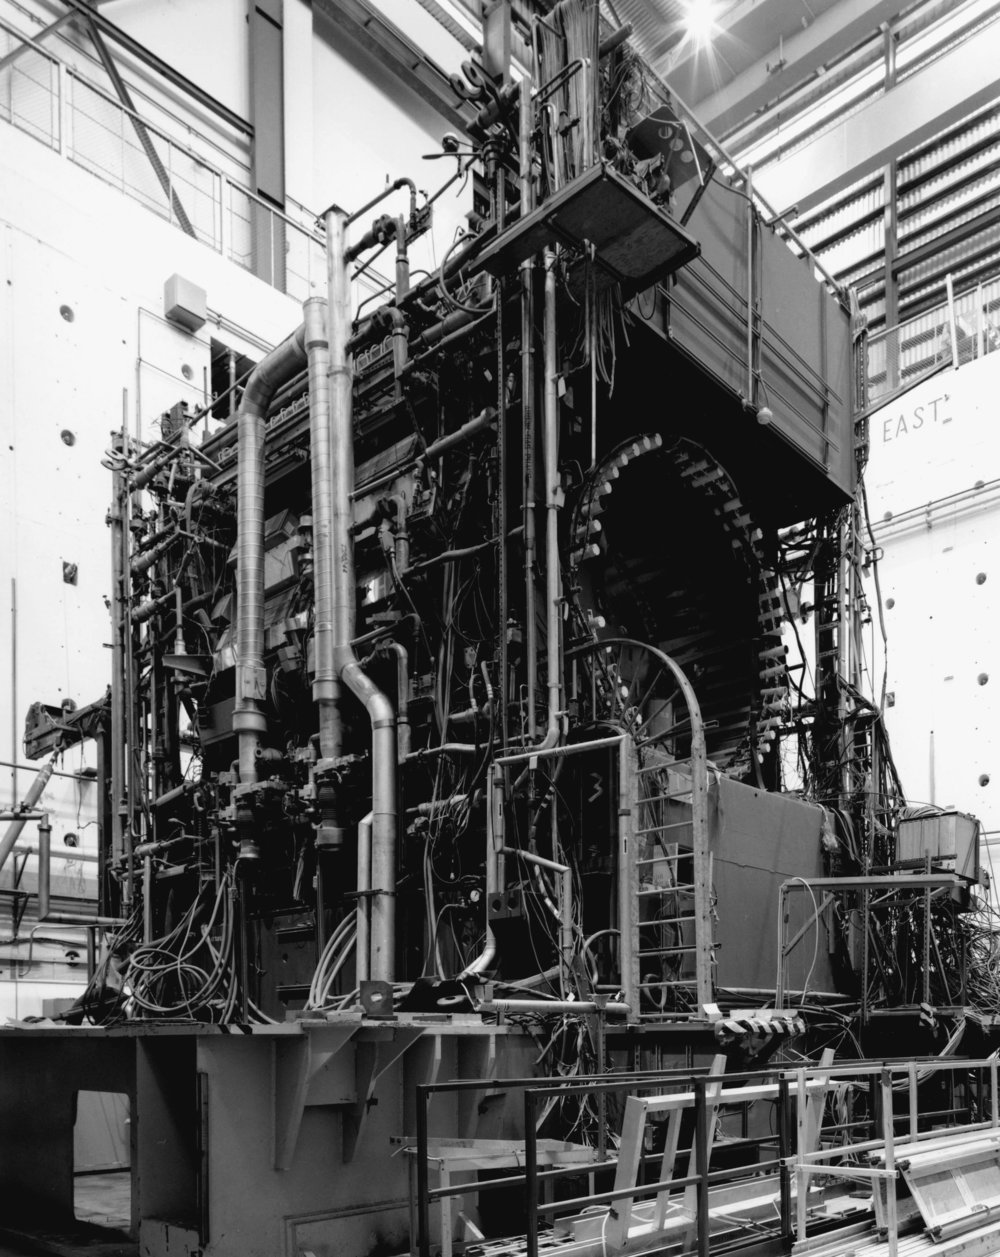 Mark II Detector, Stanford Linear Accelerator Center, California, 2006